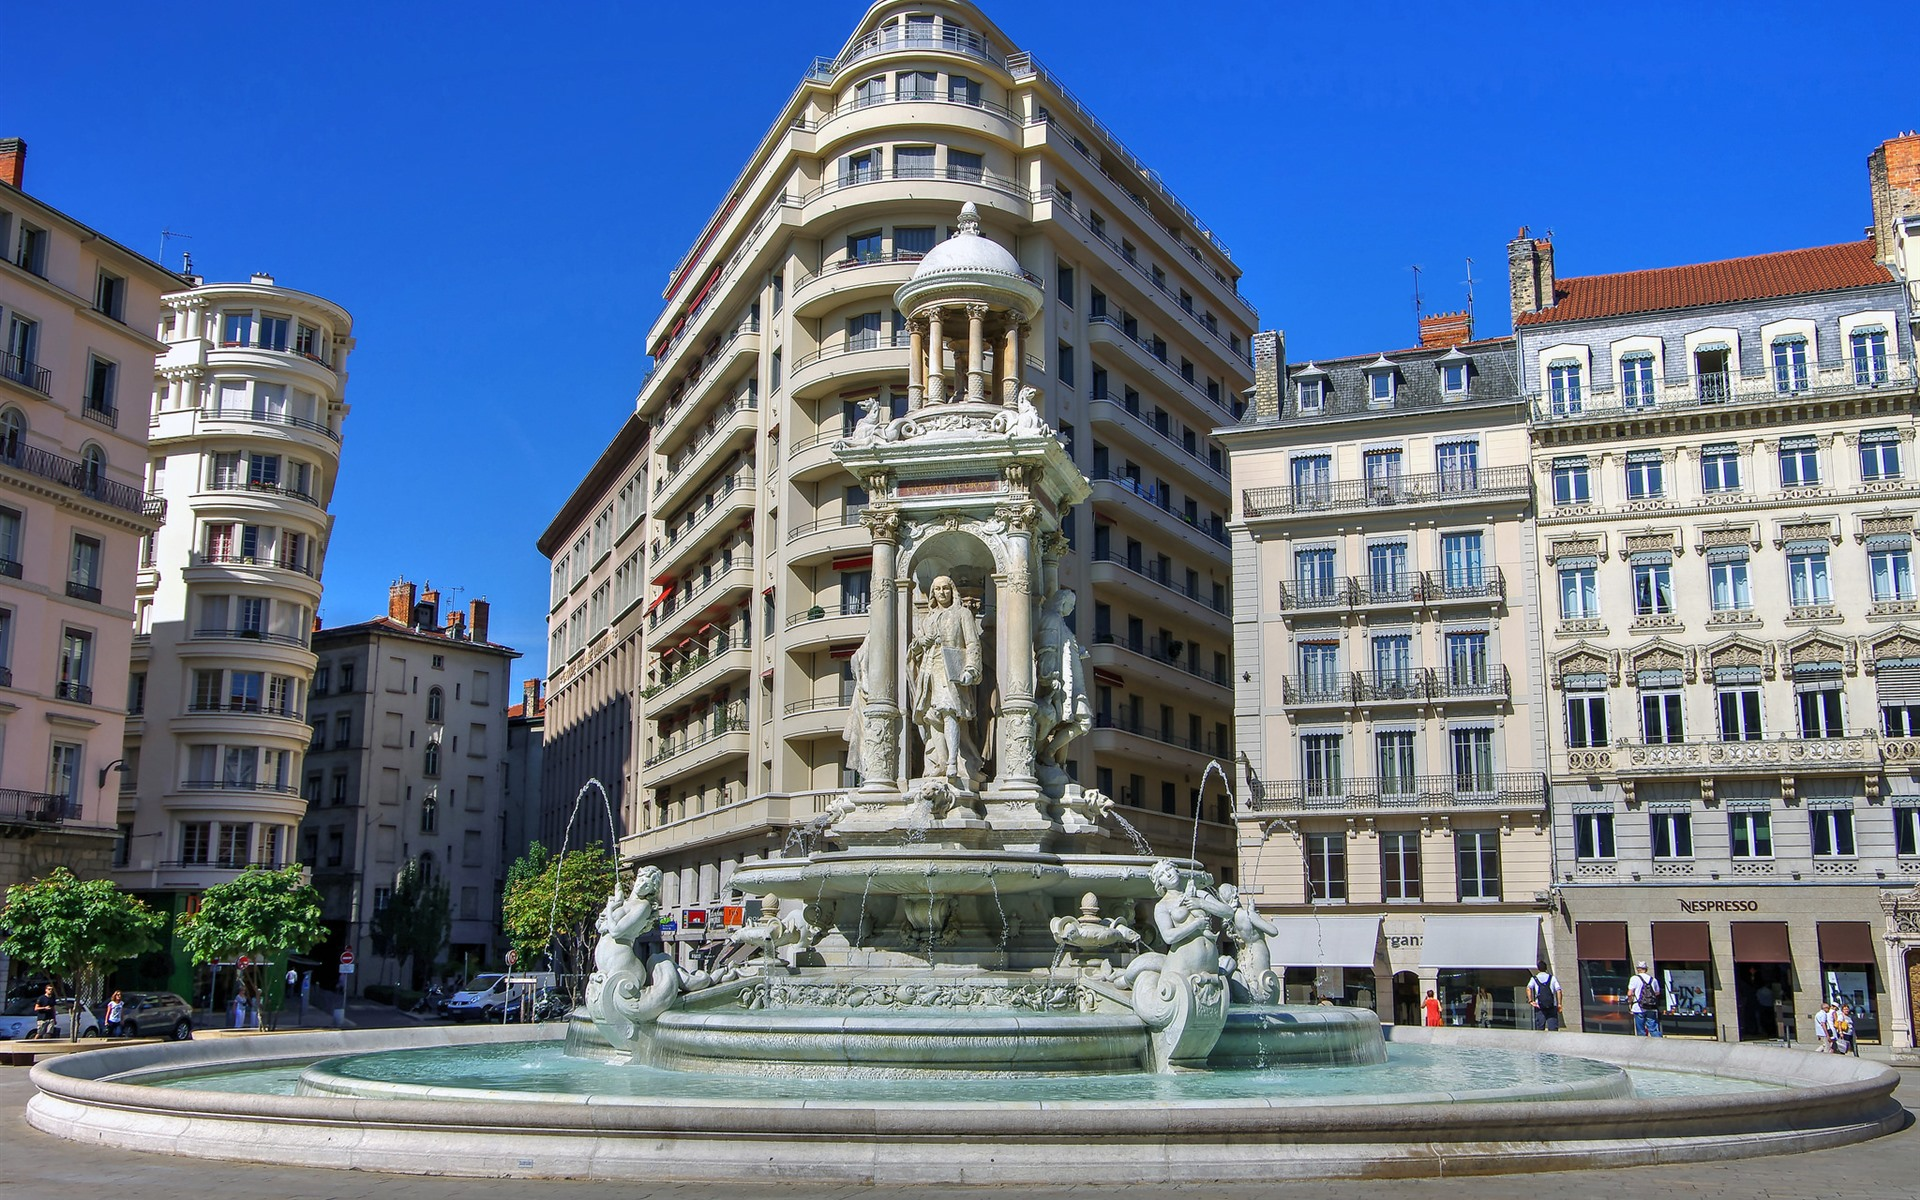 Wallpaper Lyon France City Statue Monument Fountain 1920x1200 Hd Picture Image